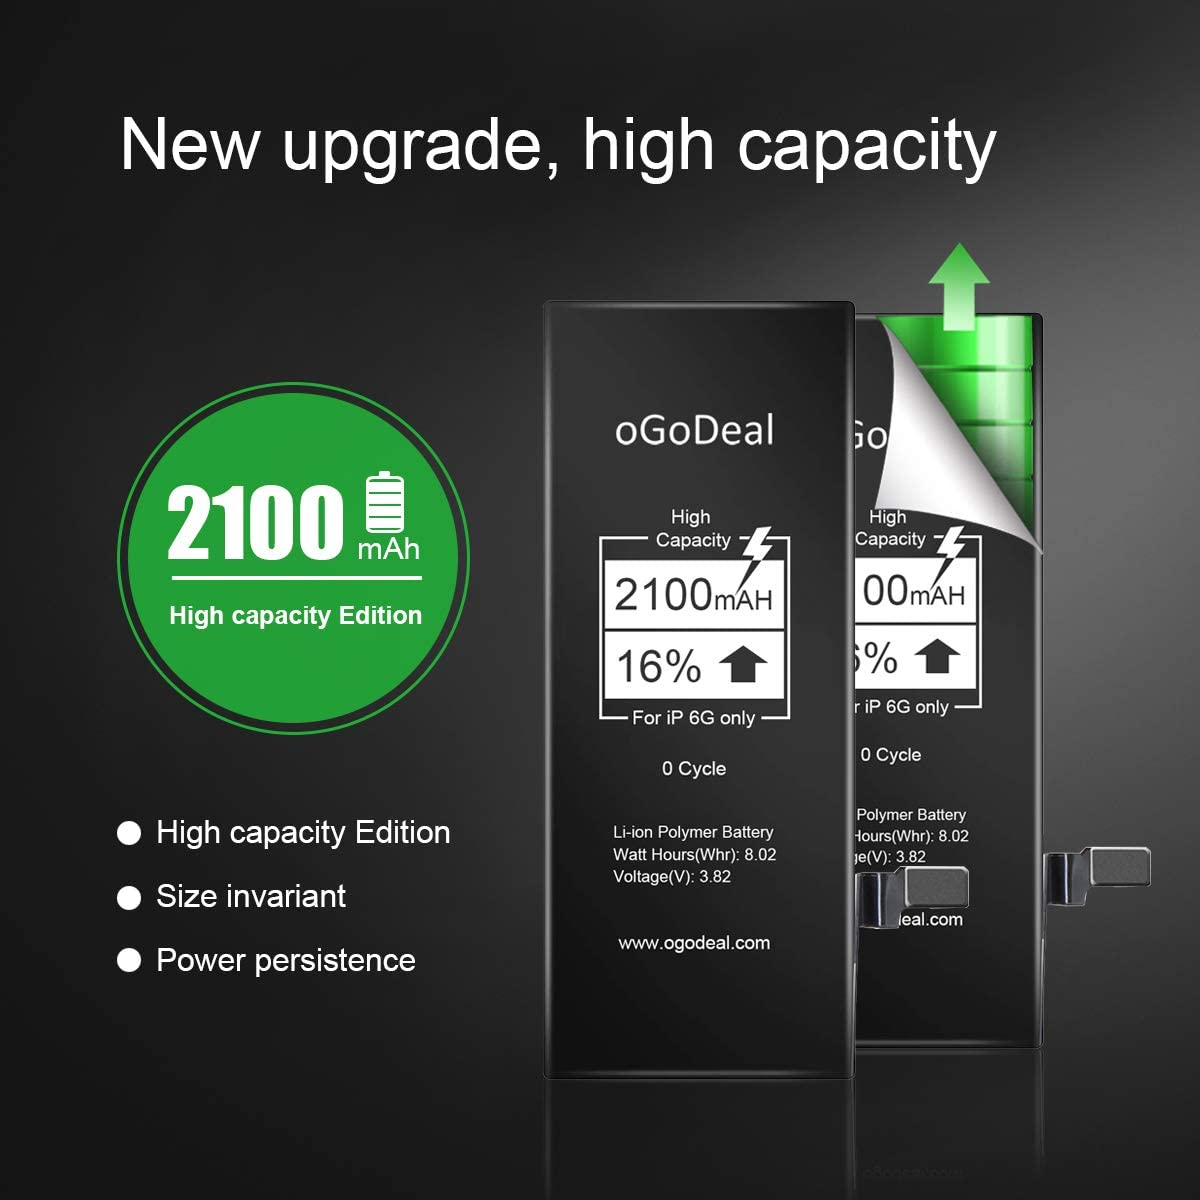 oGoDeal Battery Replacement for iPhone 5 High Capacity 1800mAh ...